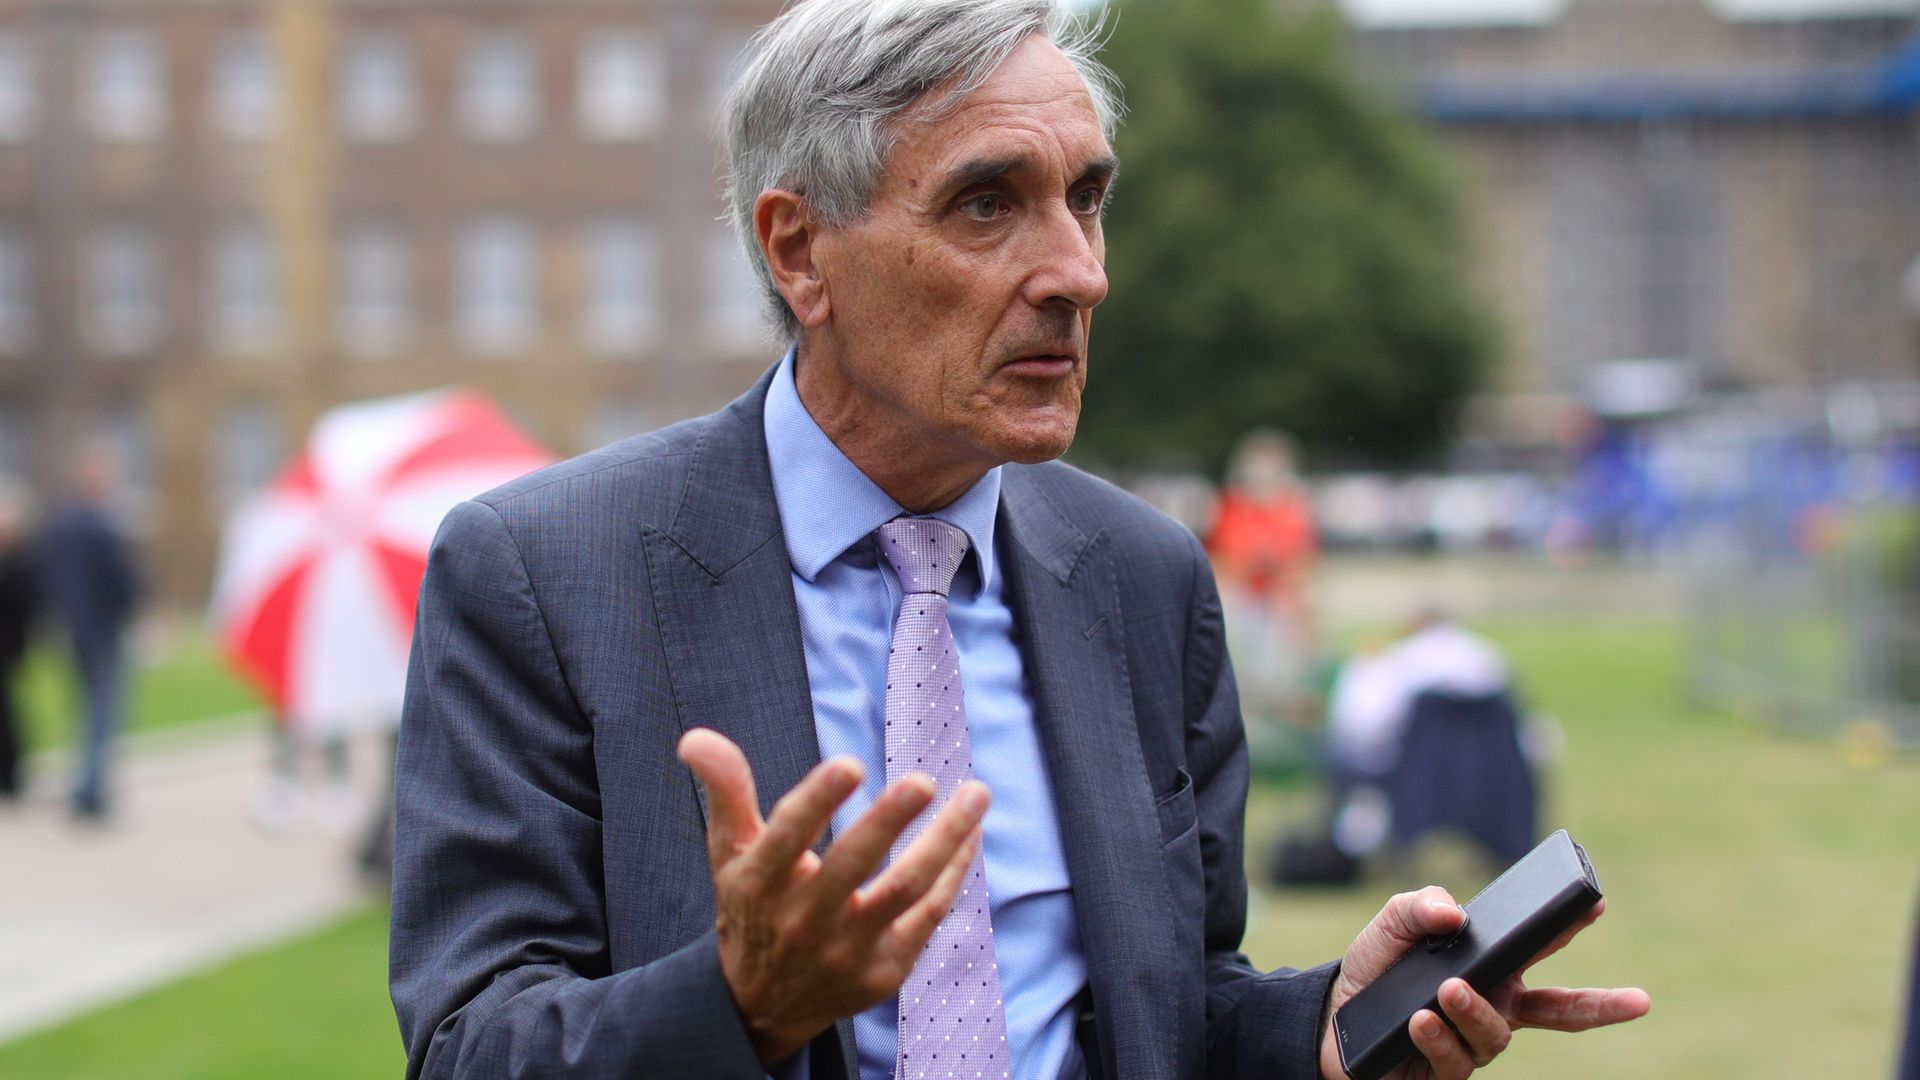 Conservative MP John Redwood in Westminster, London. - Credit: PA